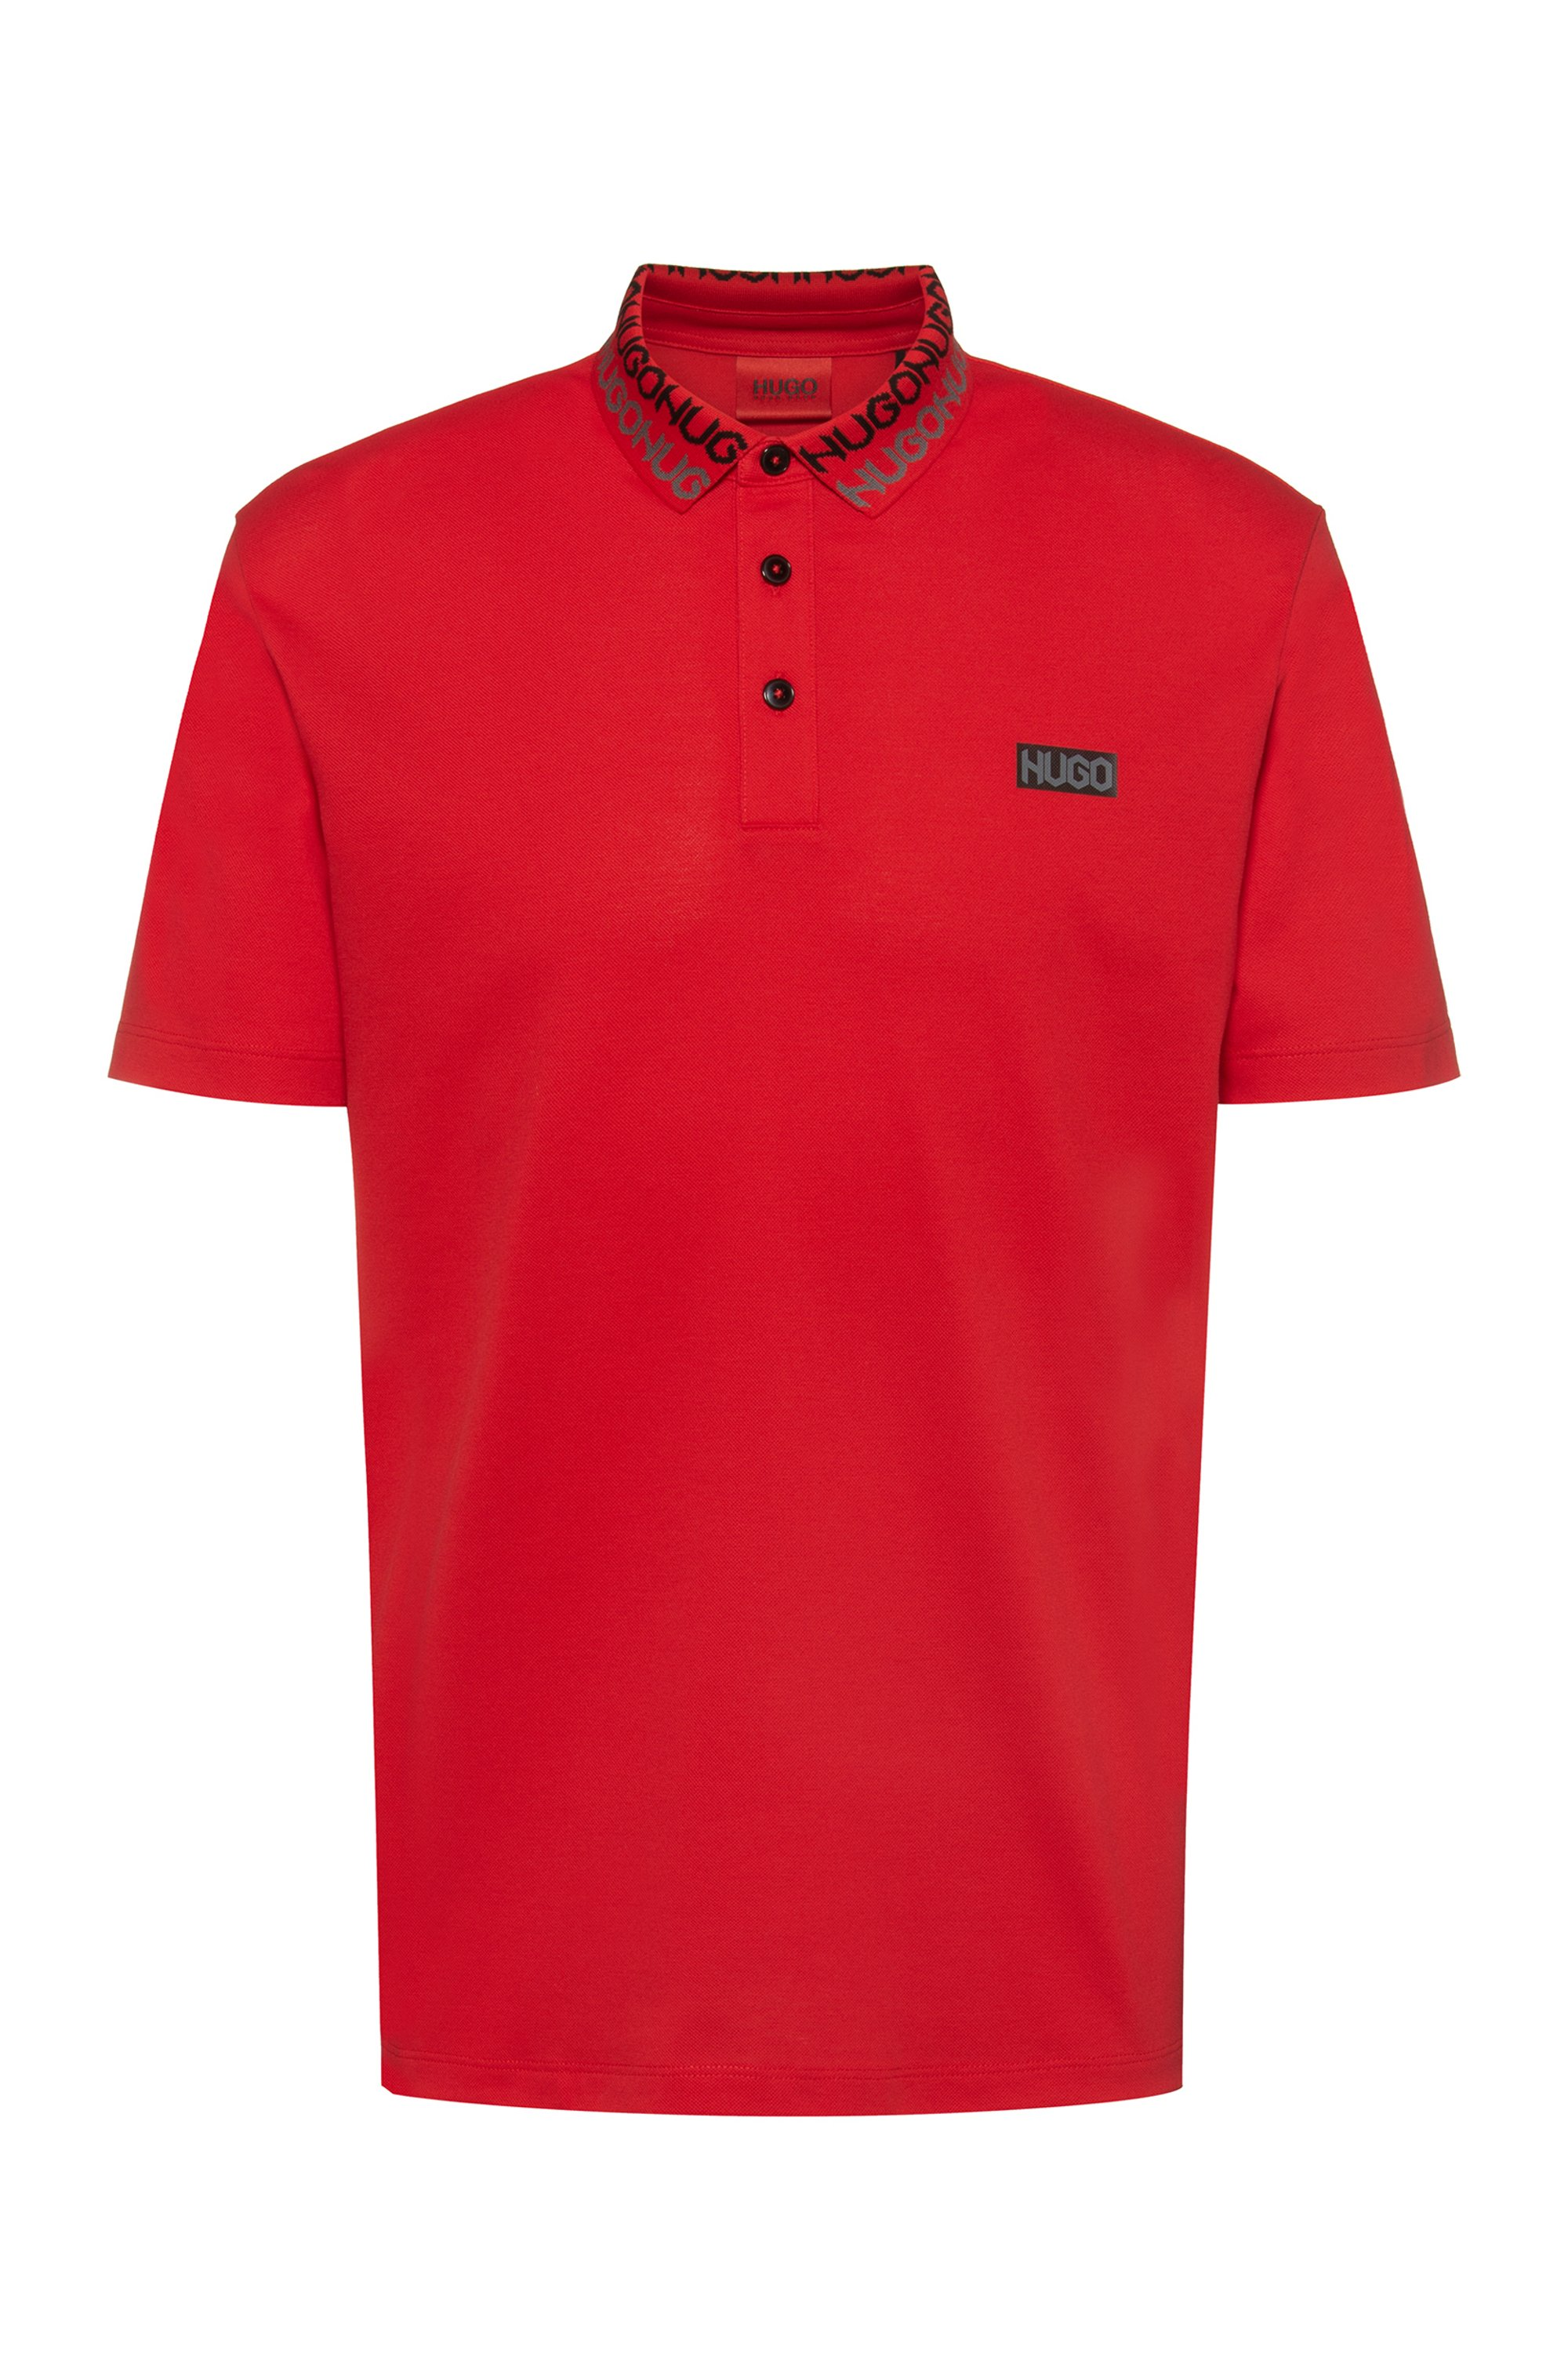 Permafit-cotton polo shirt with tyre-print logos, Red